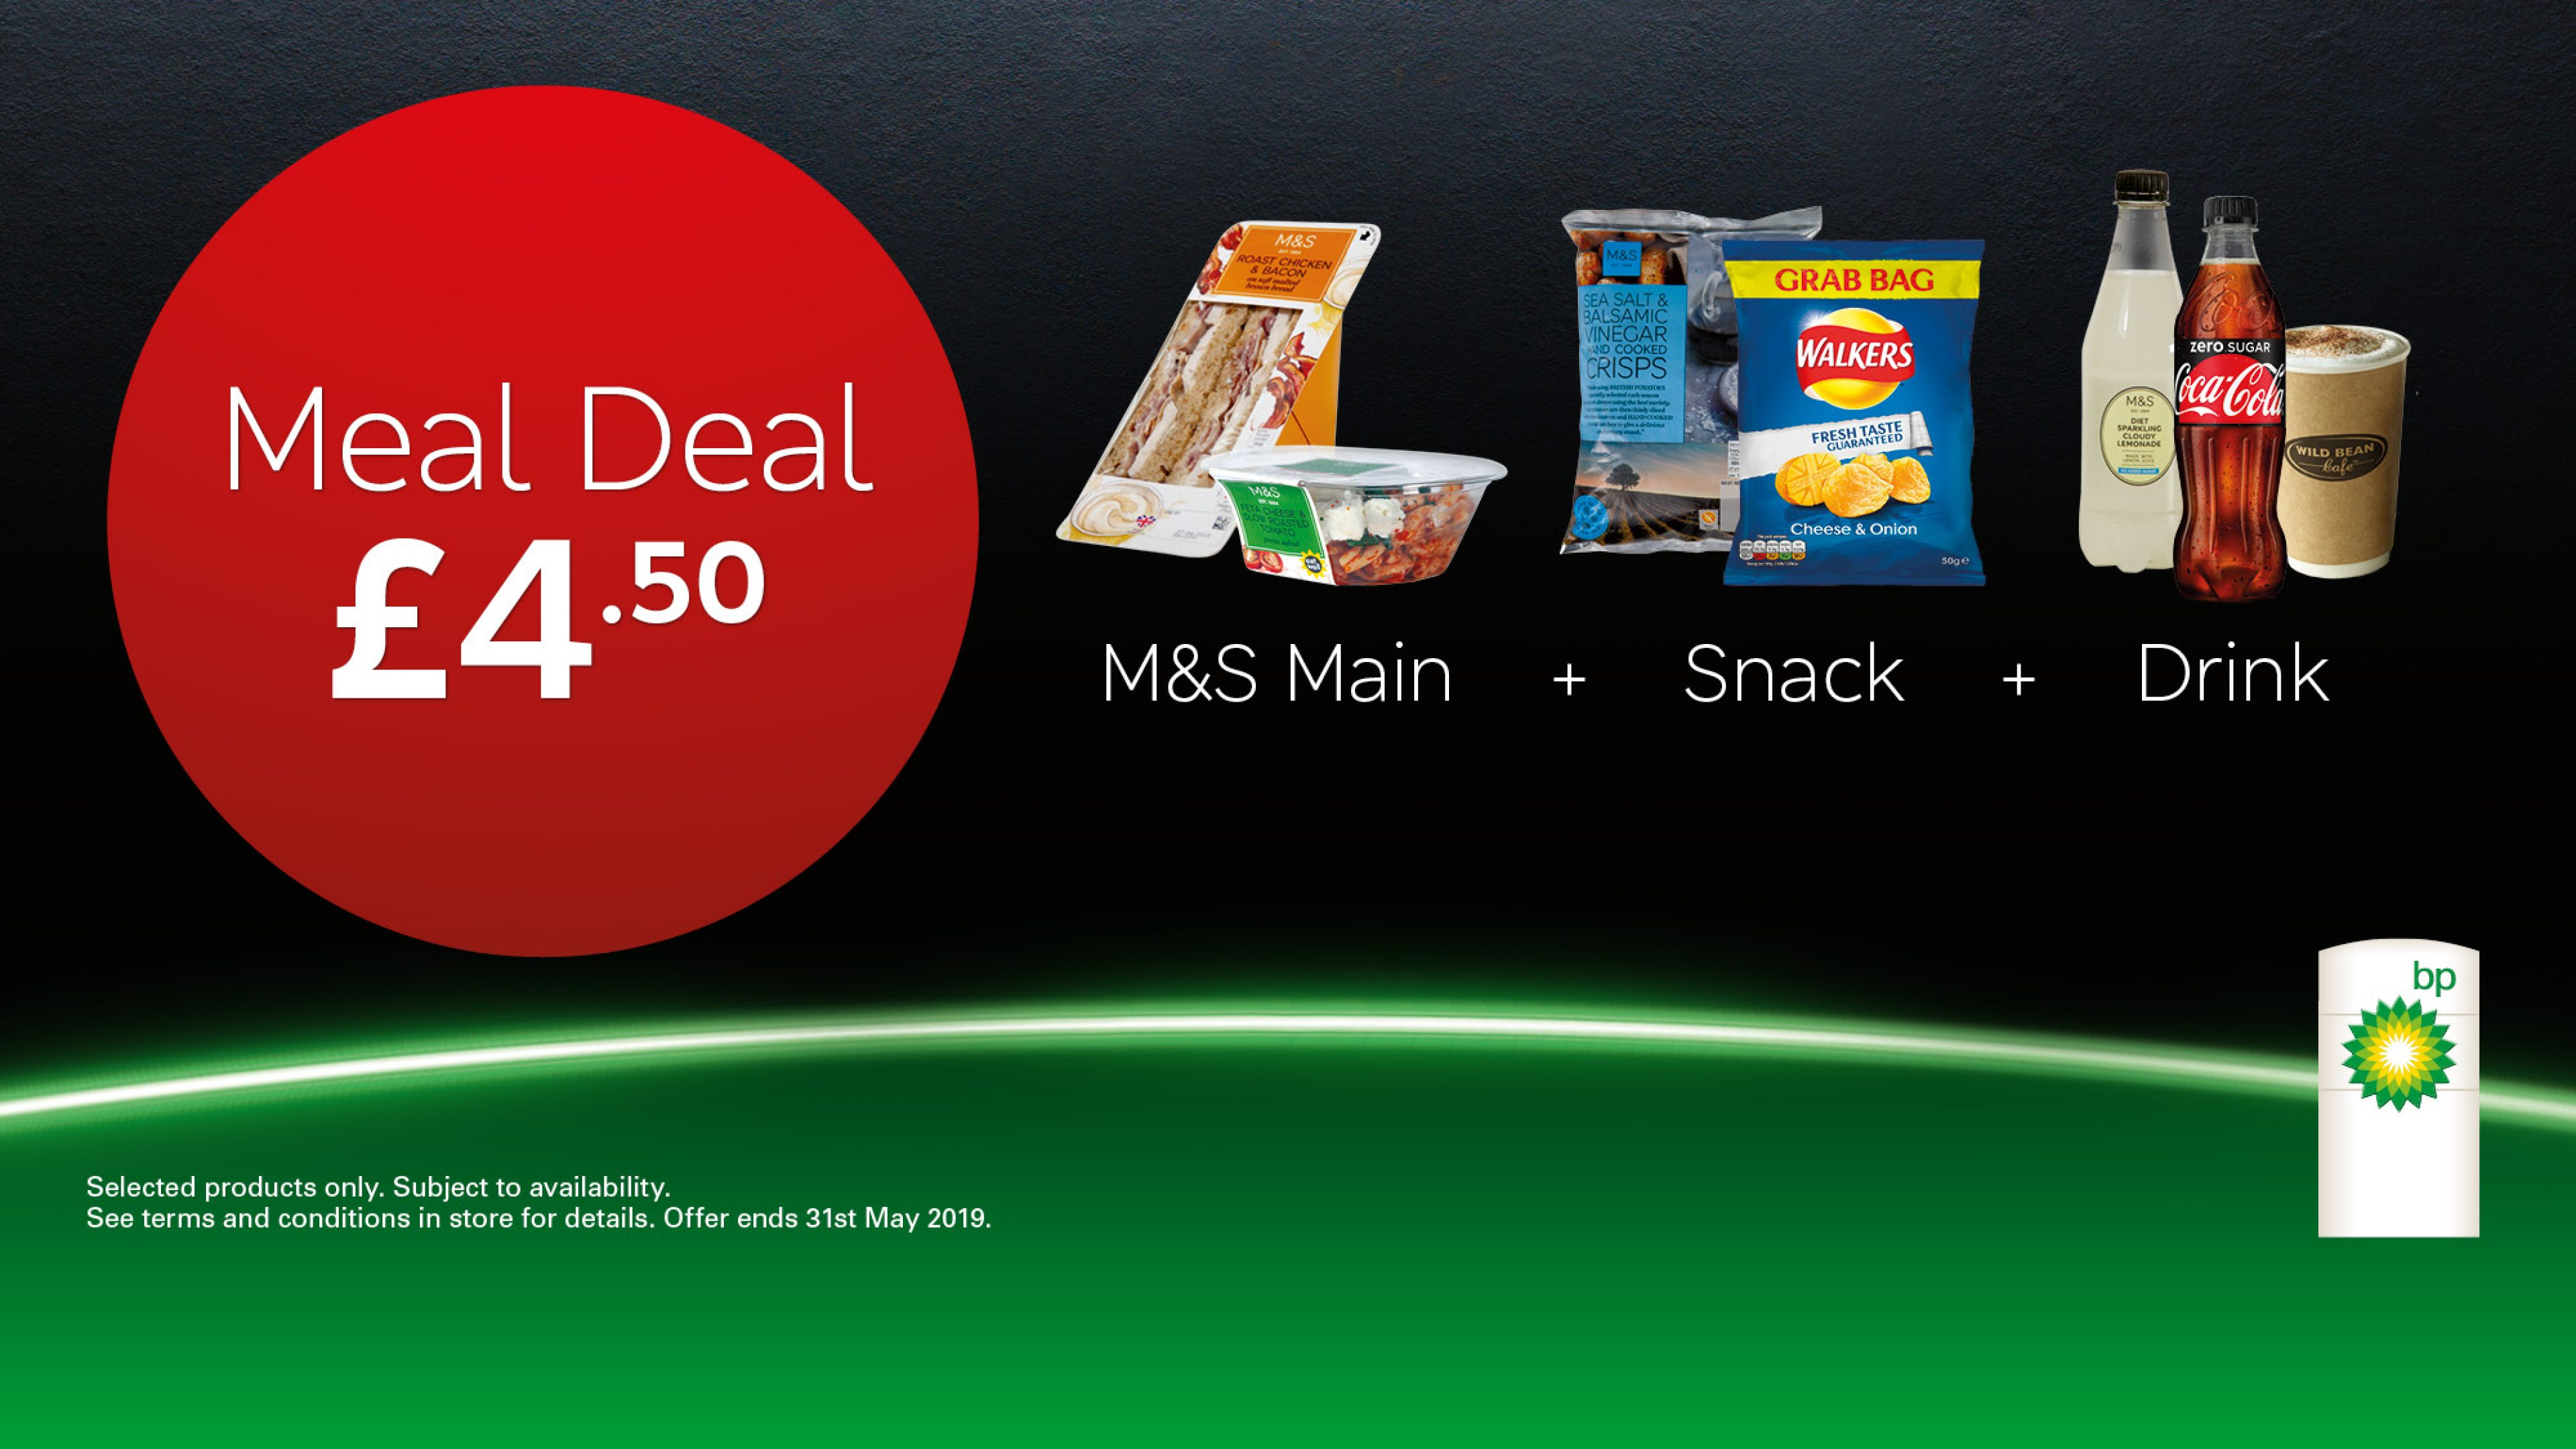 £4.50 meal deal